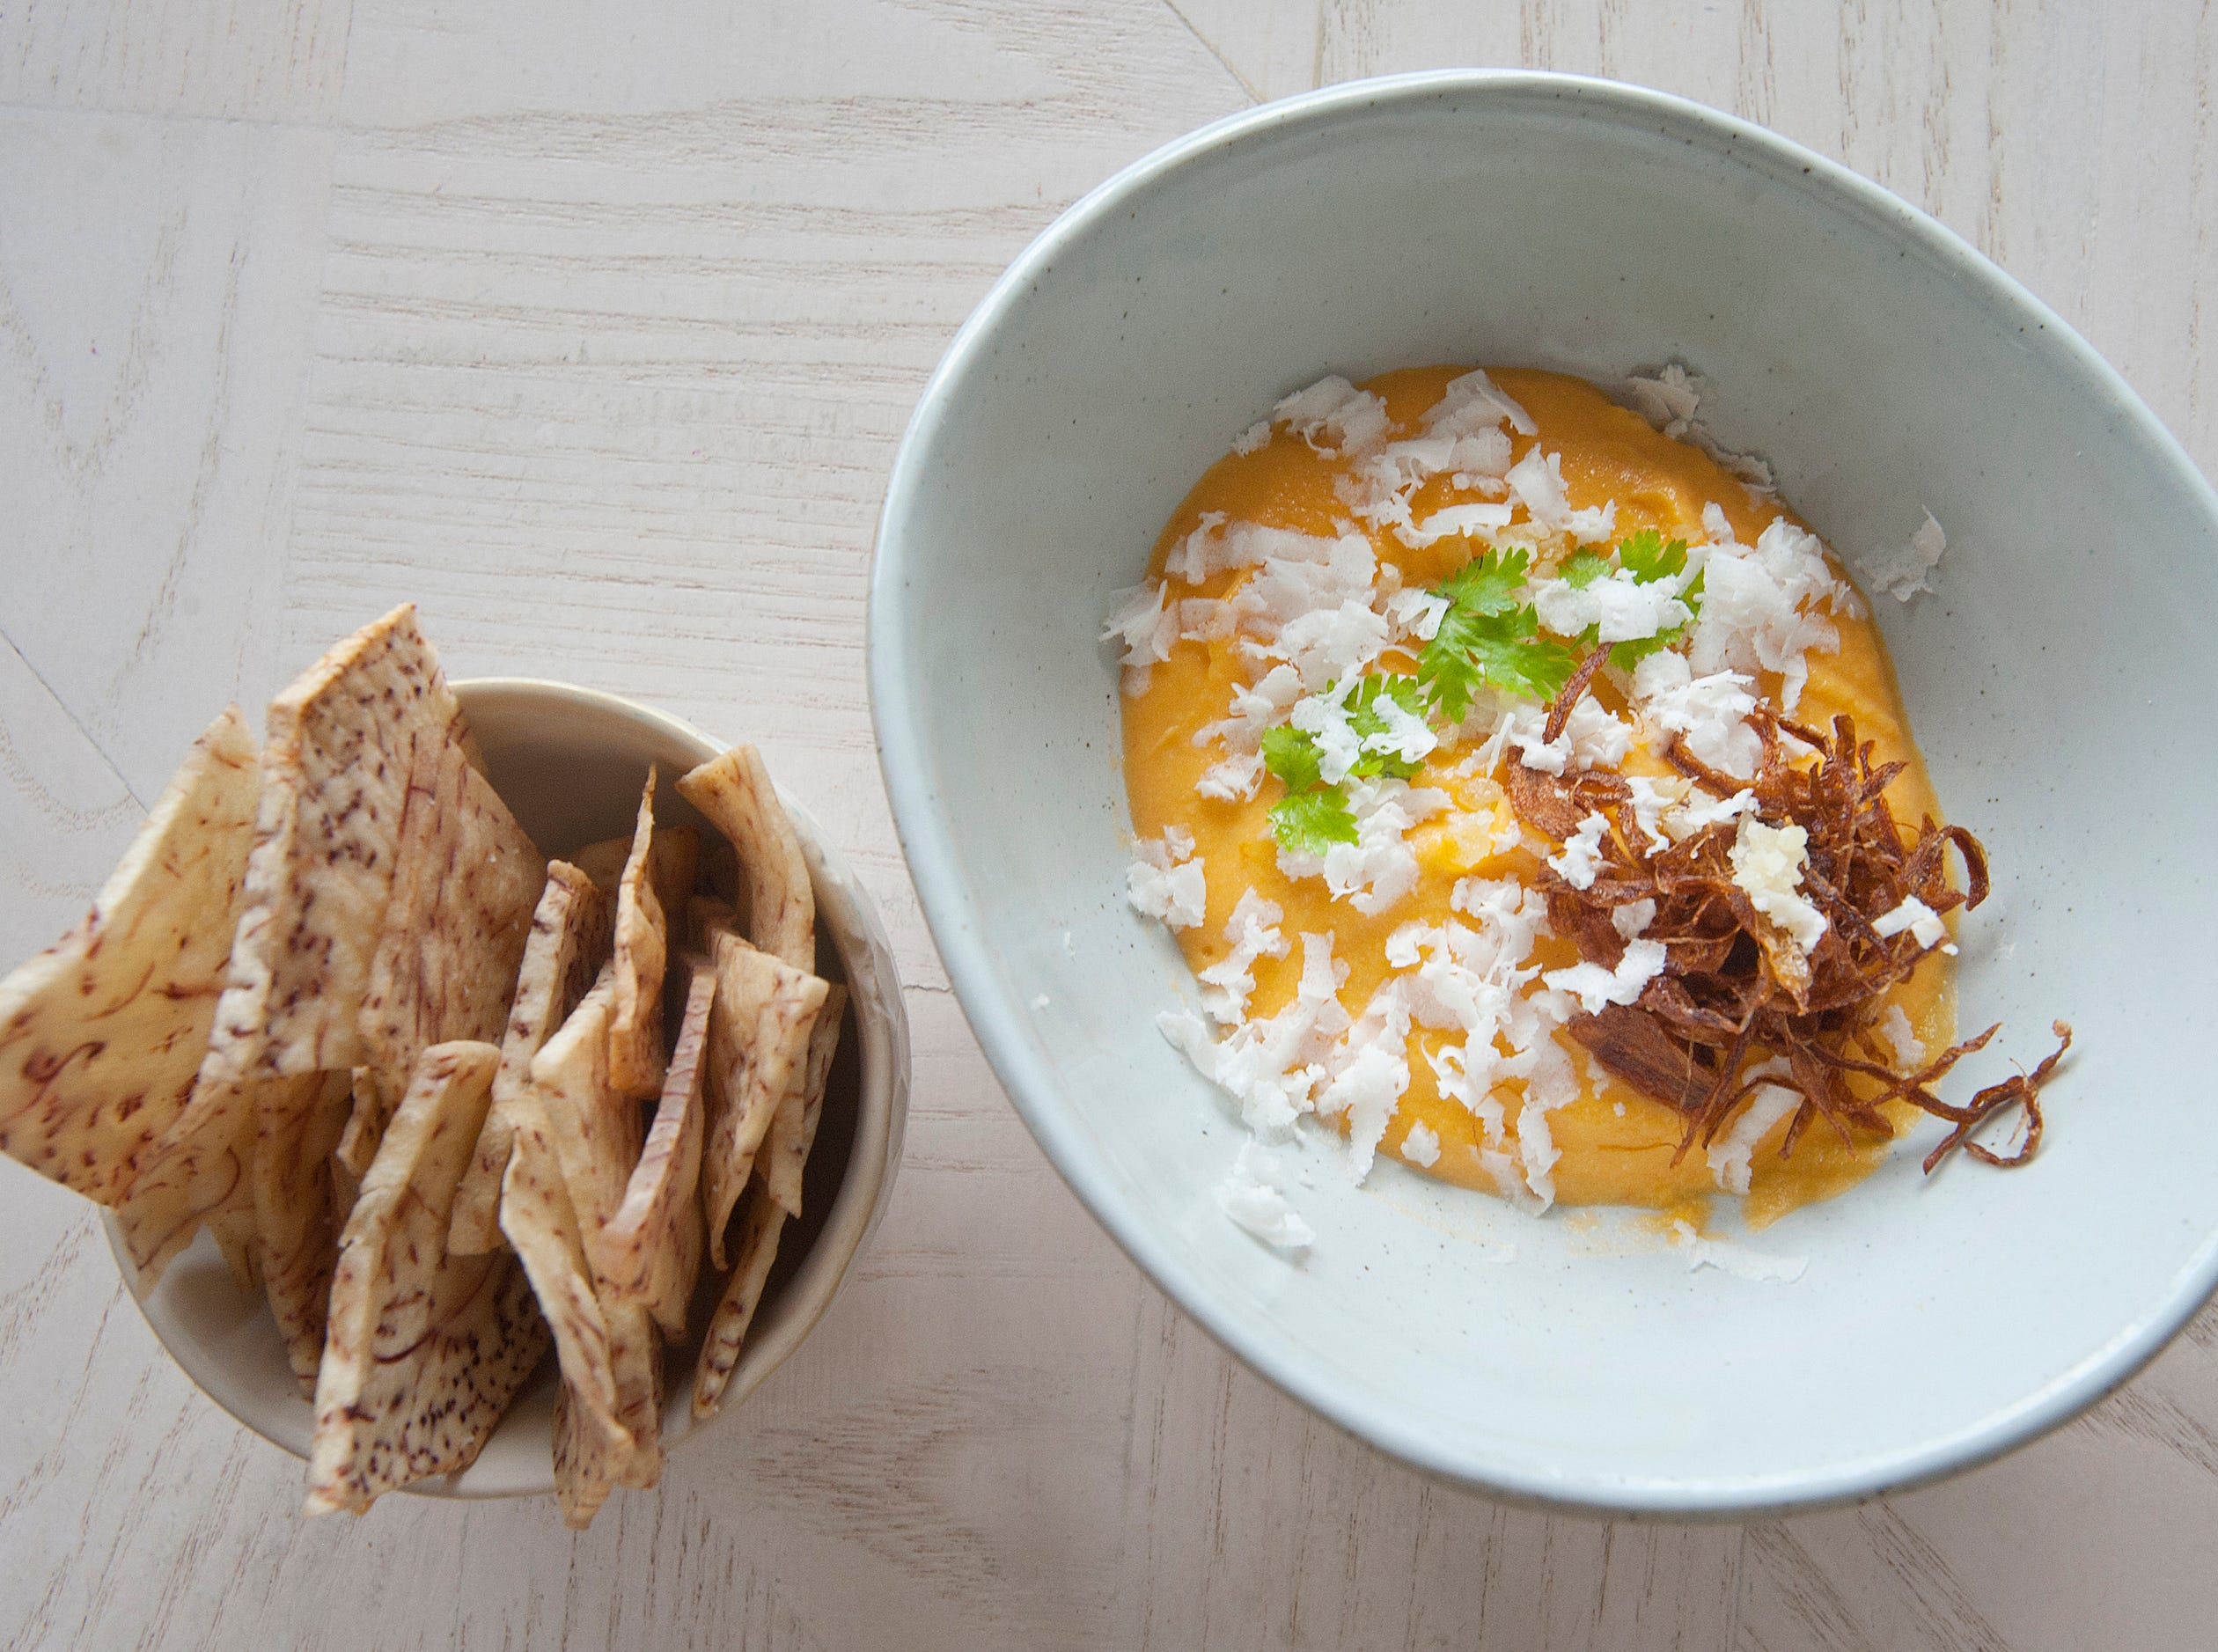 Naive's Thai butternut squash dip is made by blending oven-roasted squash, cashews, a touch of sesame seed oil and Thai chili paste.  It is then topped with coconut ricotta cheese, cilantro and crispy shallots. The dish is served with taro toot chips.September 20, 2018